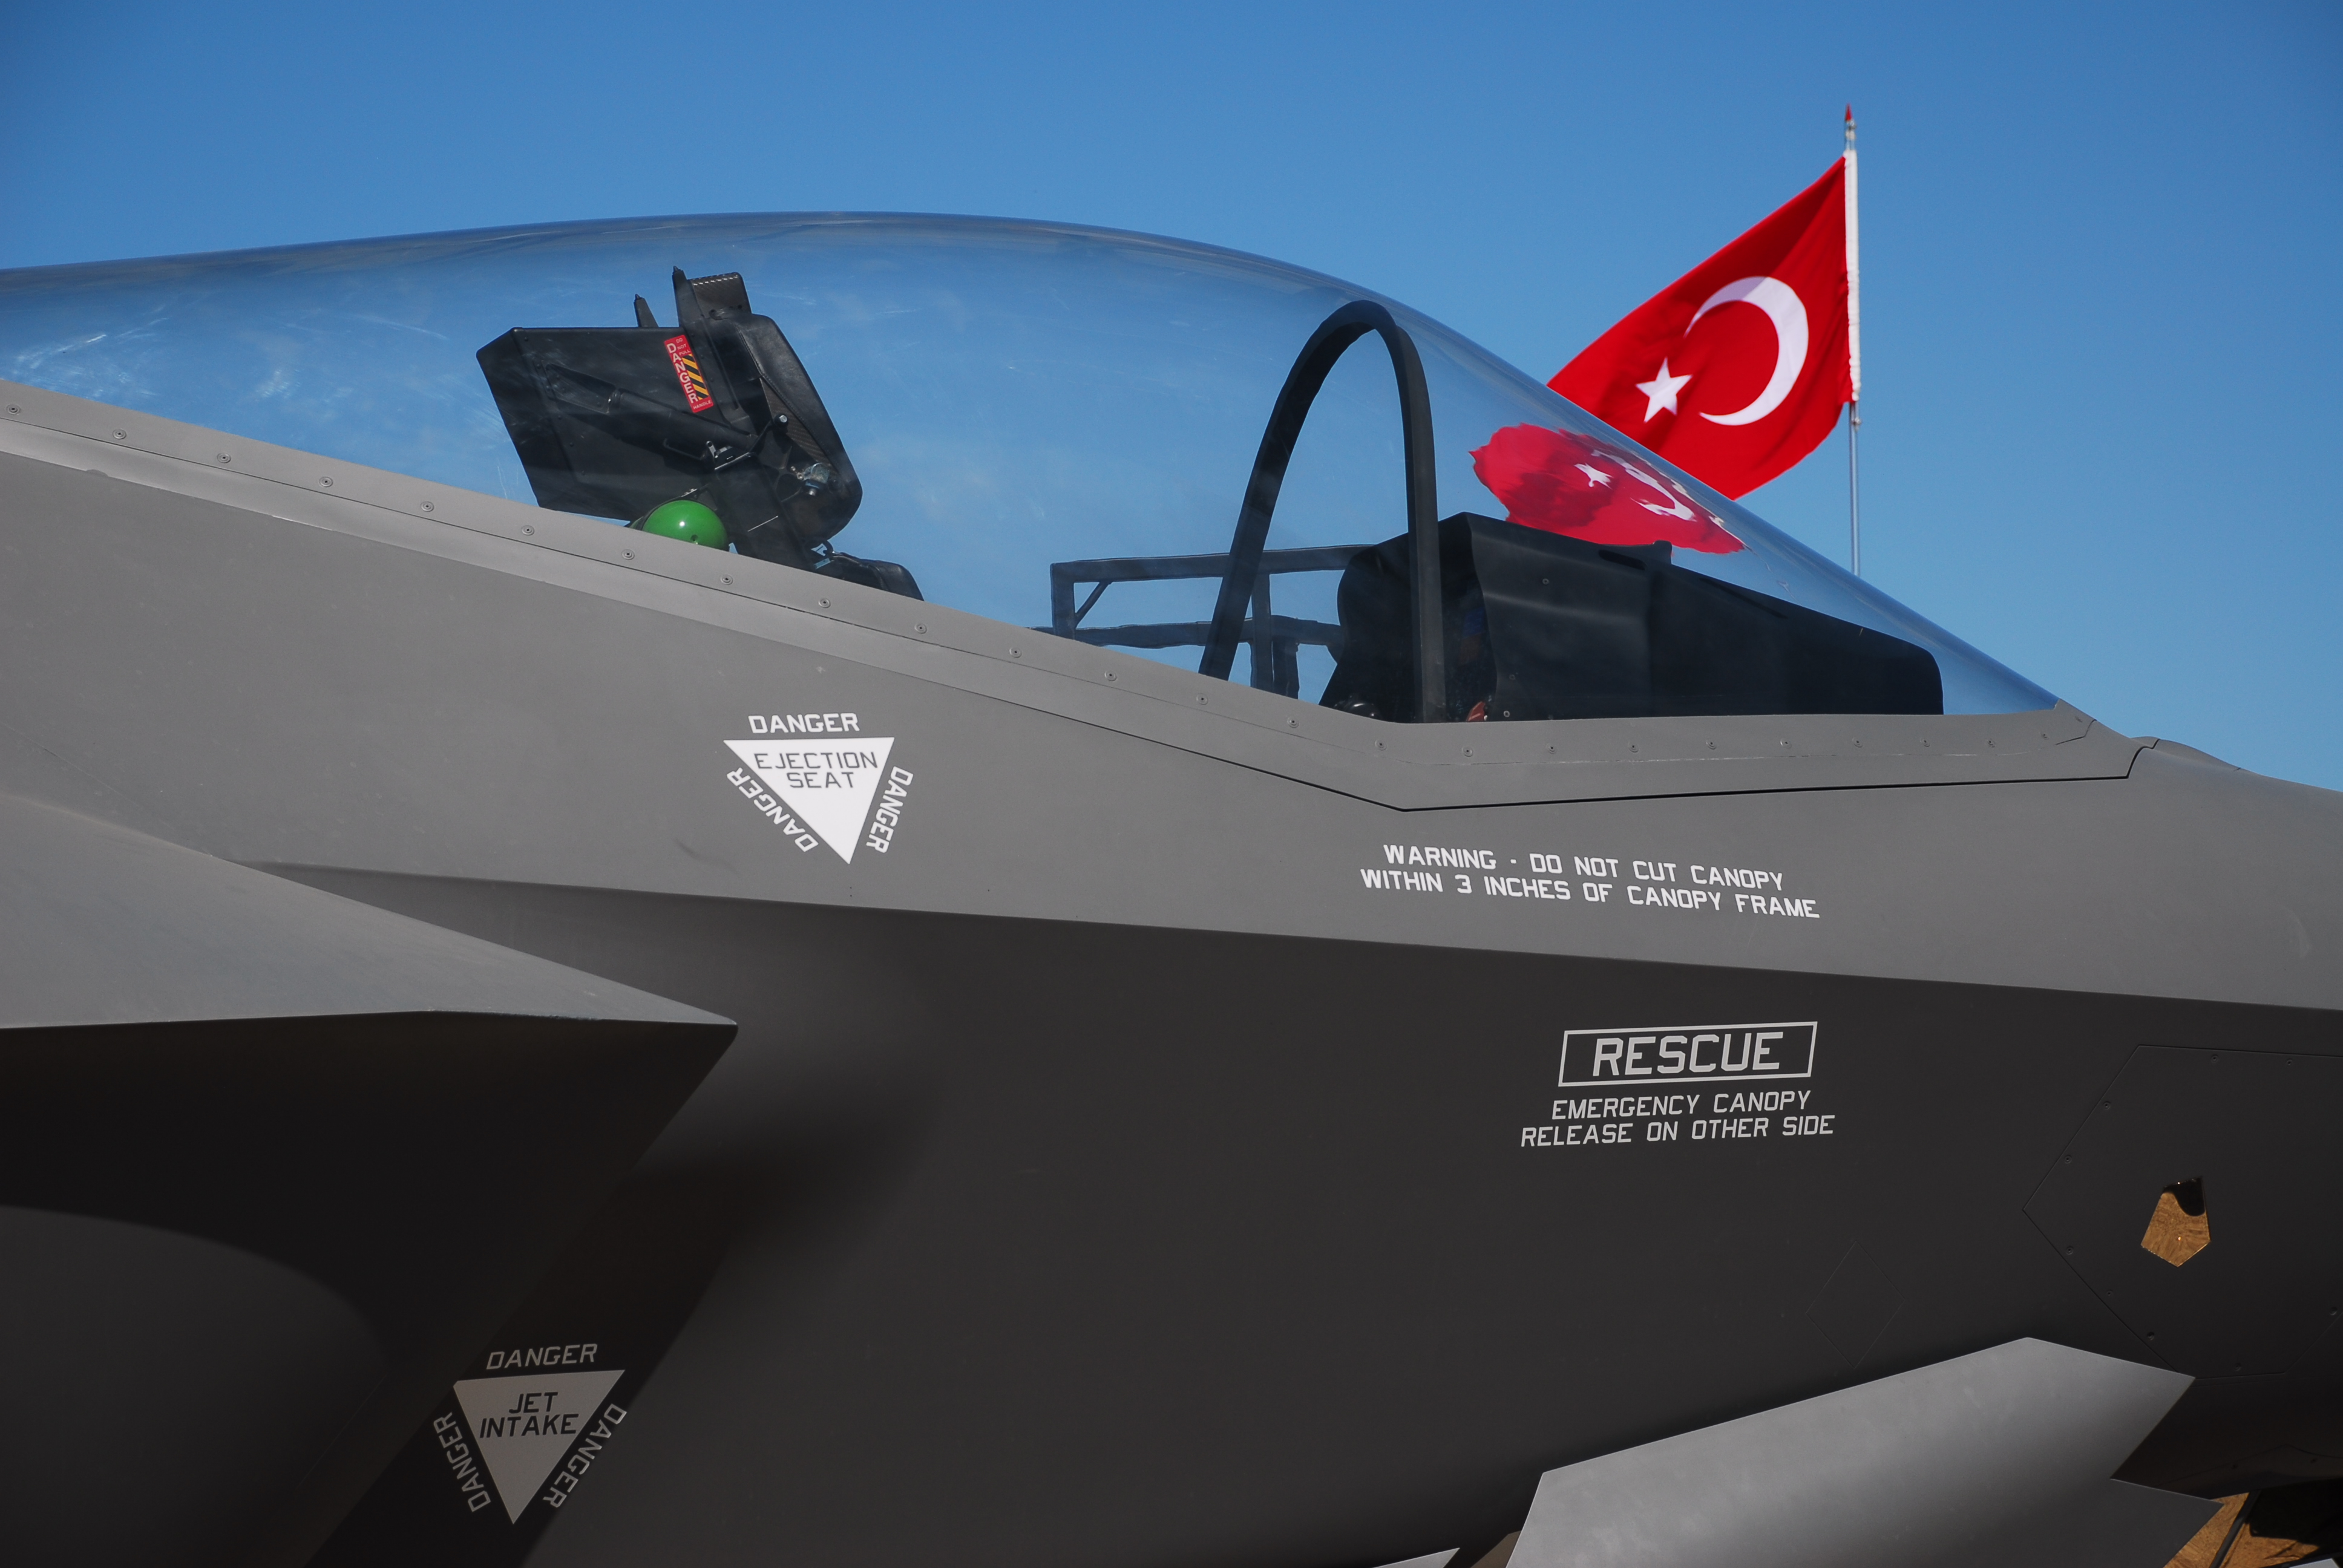 After a year of speculation about what would happen to Turkey's F-35s after the country was ousted from the Joint Strike Fighter program in 2019, the Pentagon announced plans to buy eight F-35A jets, originally built by Lockheed Martin for Turkey, as part of a $862 million contract modification. The deal also contained an additional six F-35As built for the U.S. Air Force and modifications that will bring the Turkish jets in line with the U.S. configuration. (dardanellas/Getty Images)